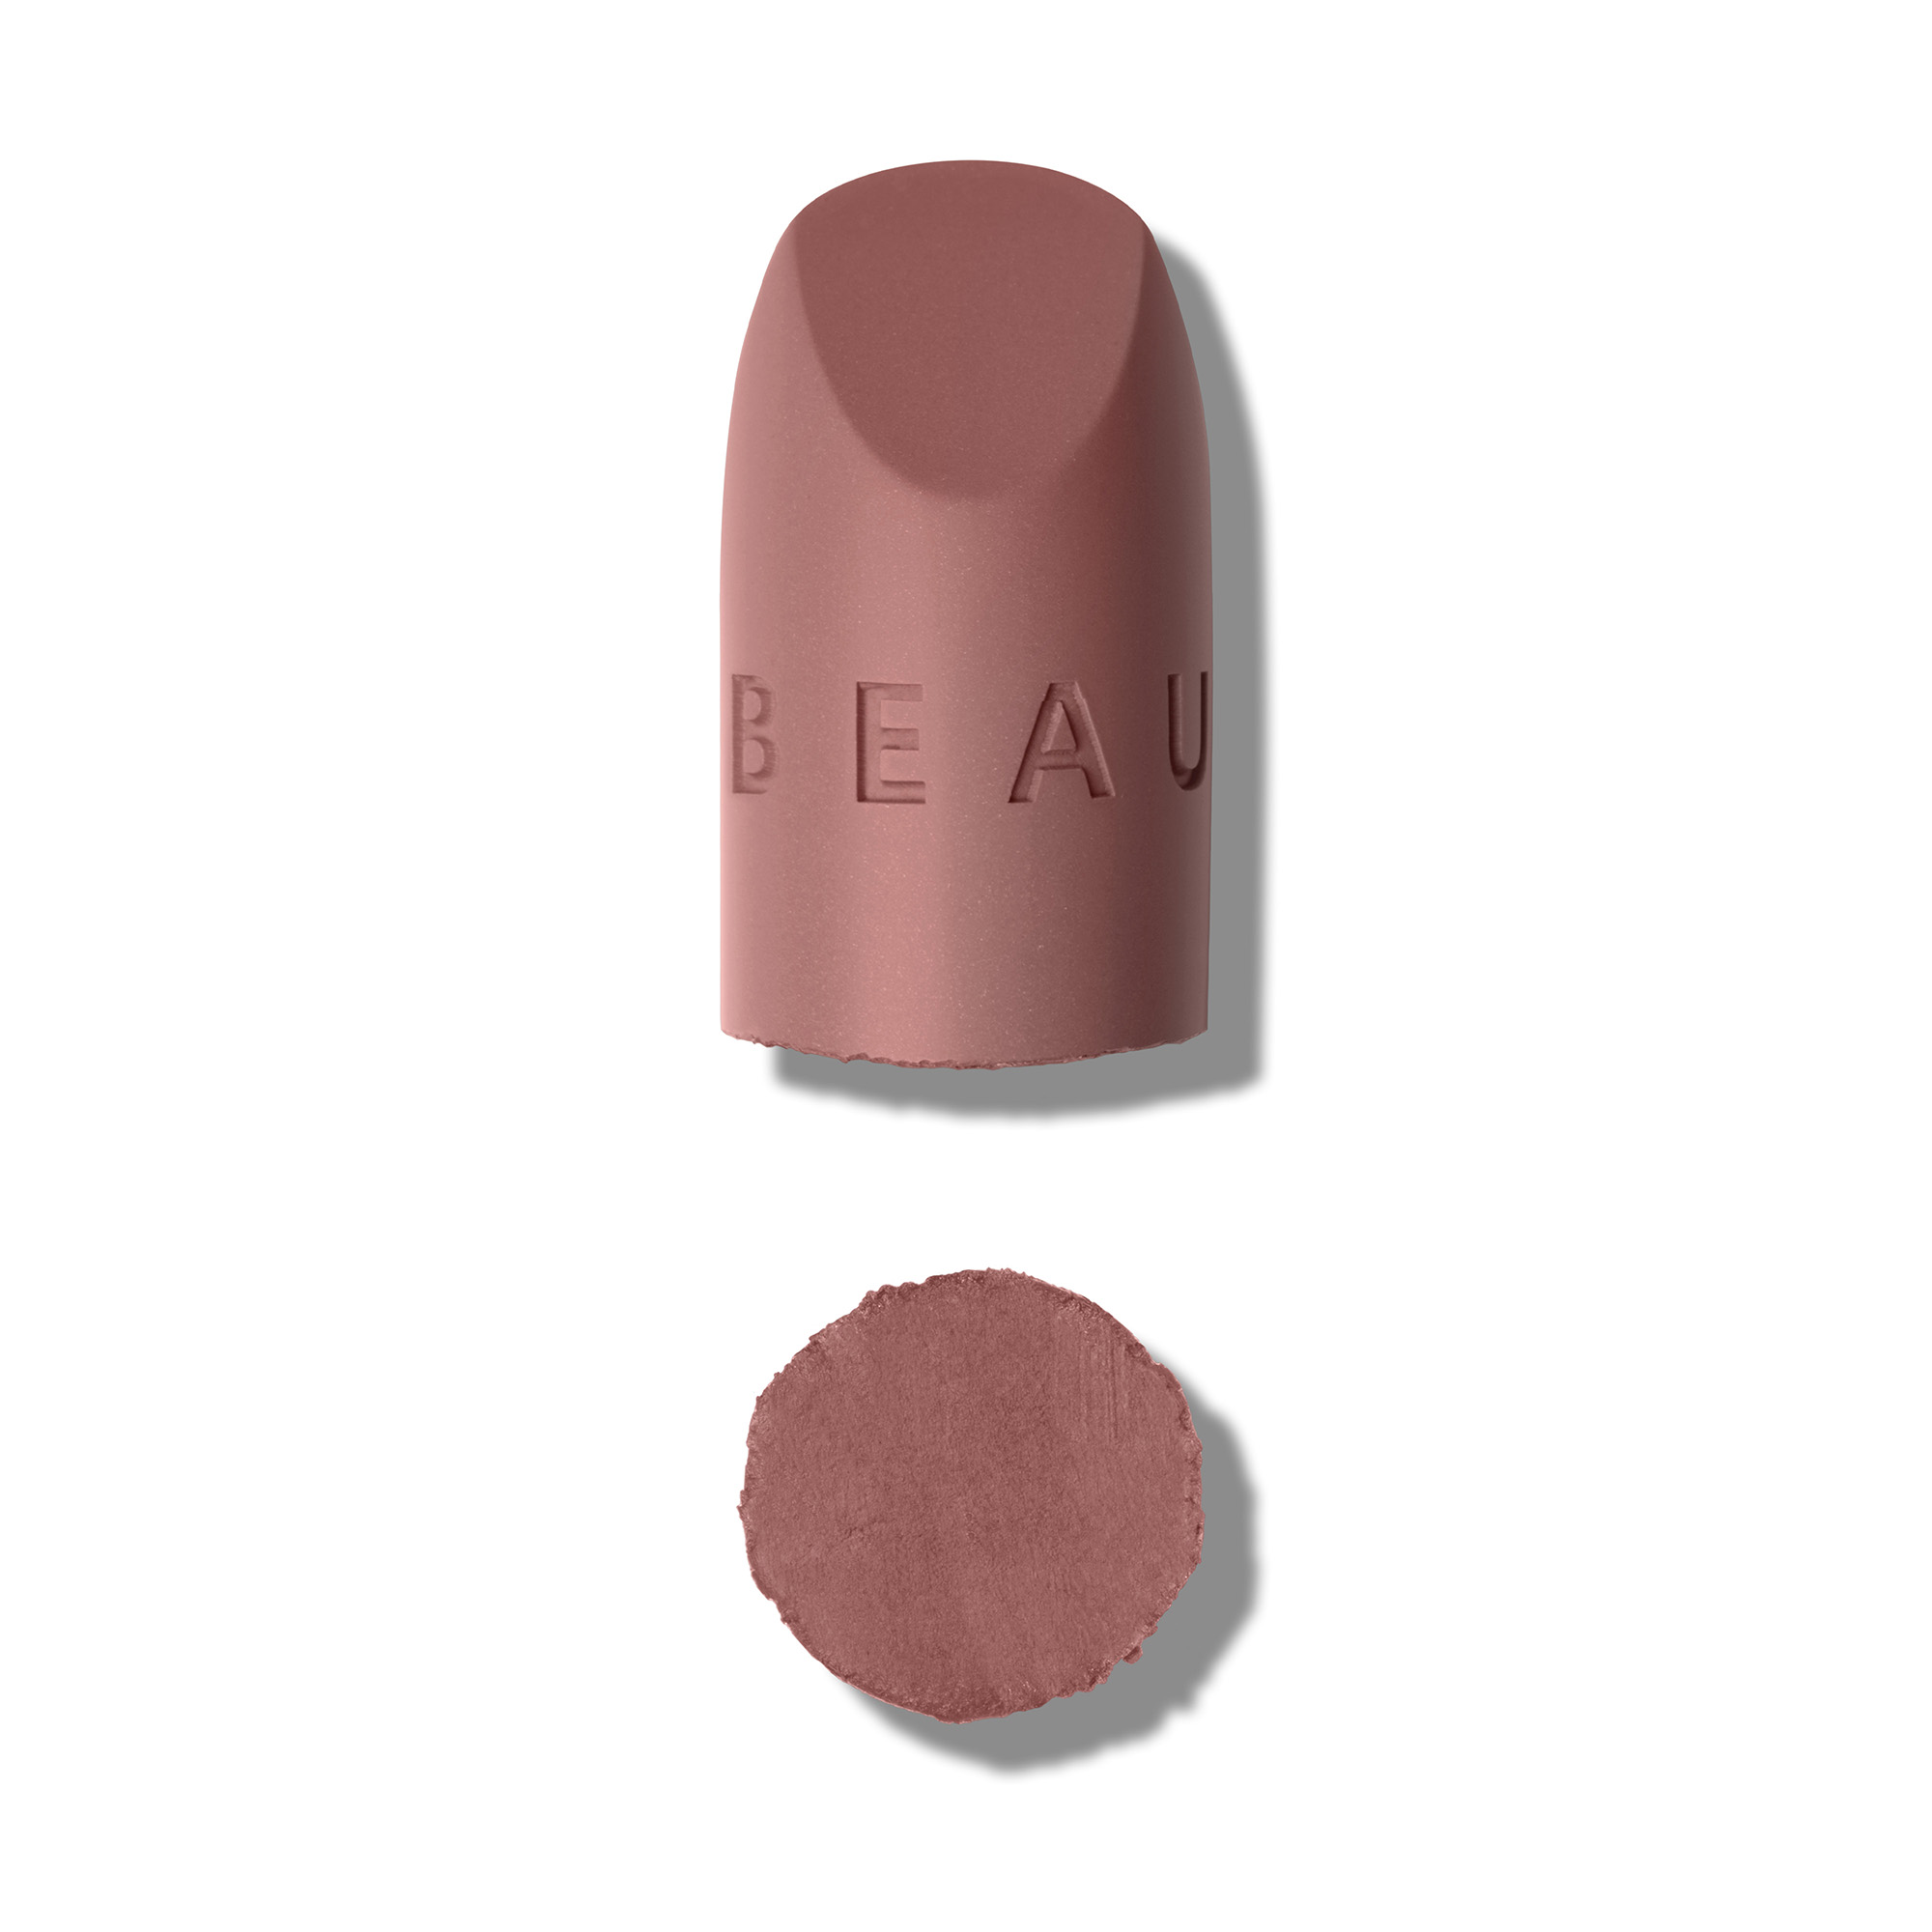 Futurelipstick™ Matte by Beauty Pie